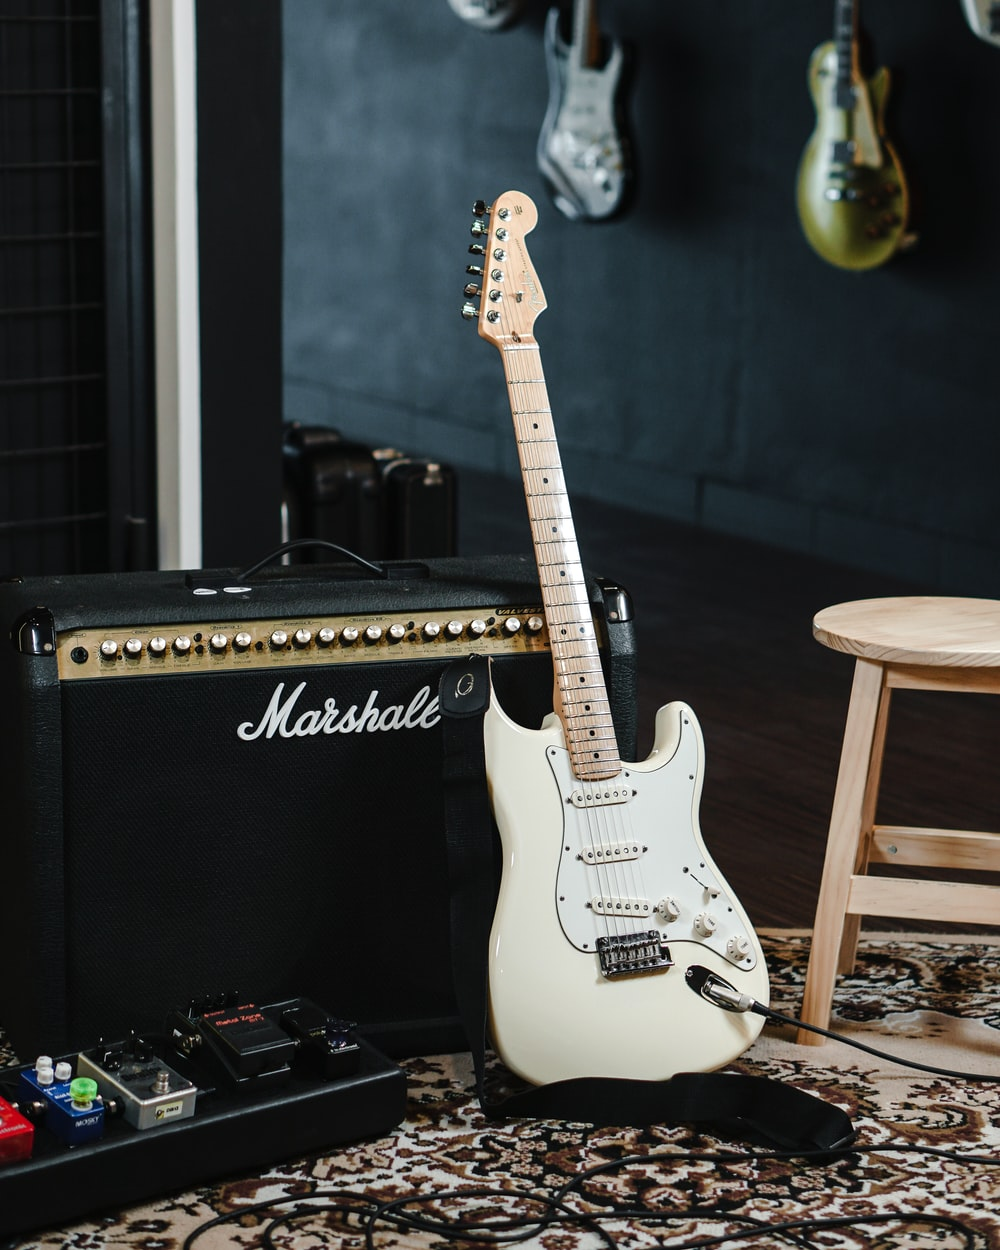 white and black stratocaster electric guitar on black guitar amplifier